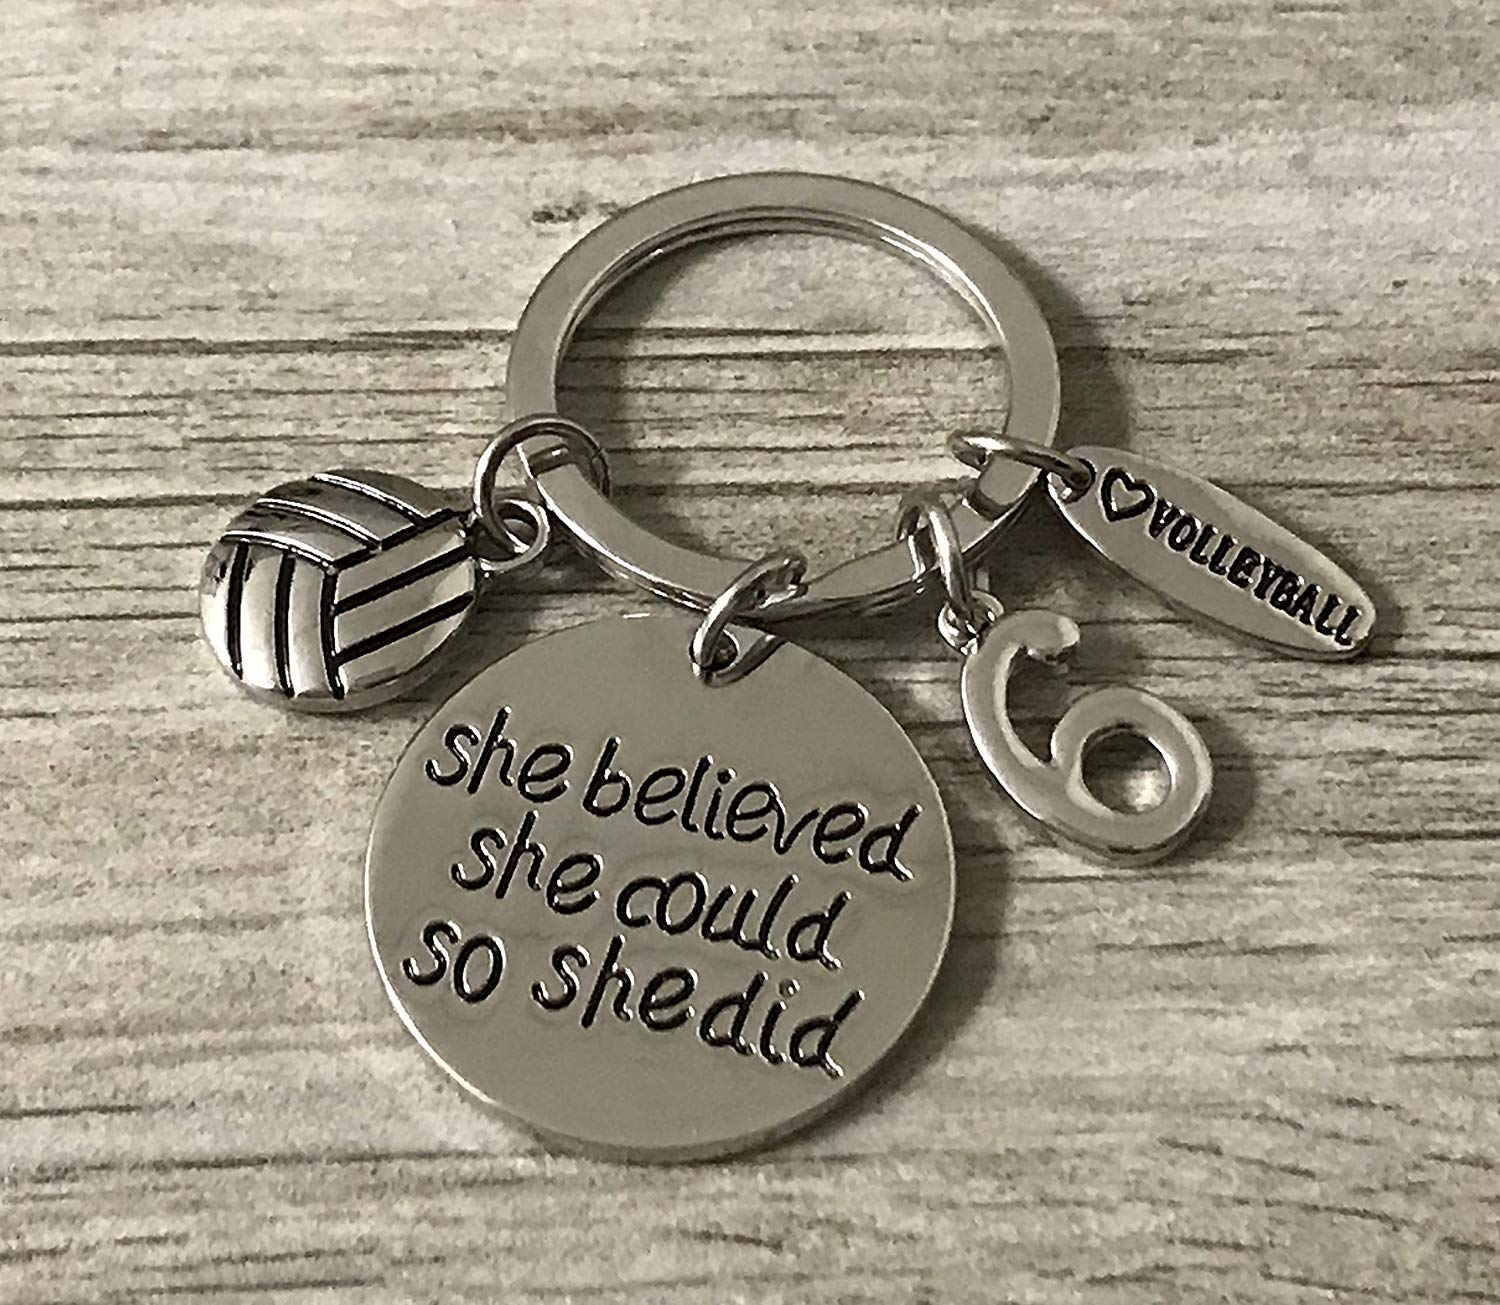 Personalized Volleyball Keychain with Number Charm, Custom She Believed She Could So She Did Volleyball Gift, Girls Volleyball Jewelry, Perfect Volleyball Player, Team and Coaches Gifts